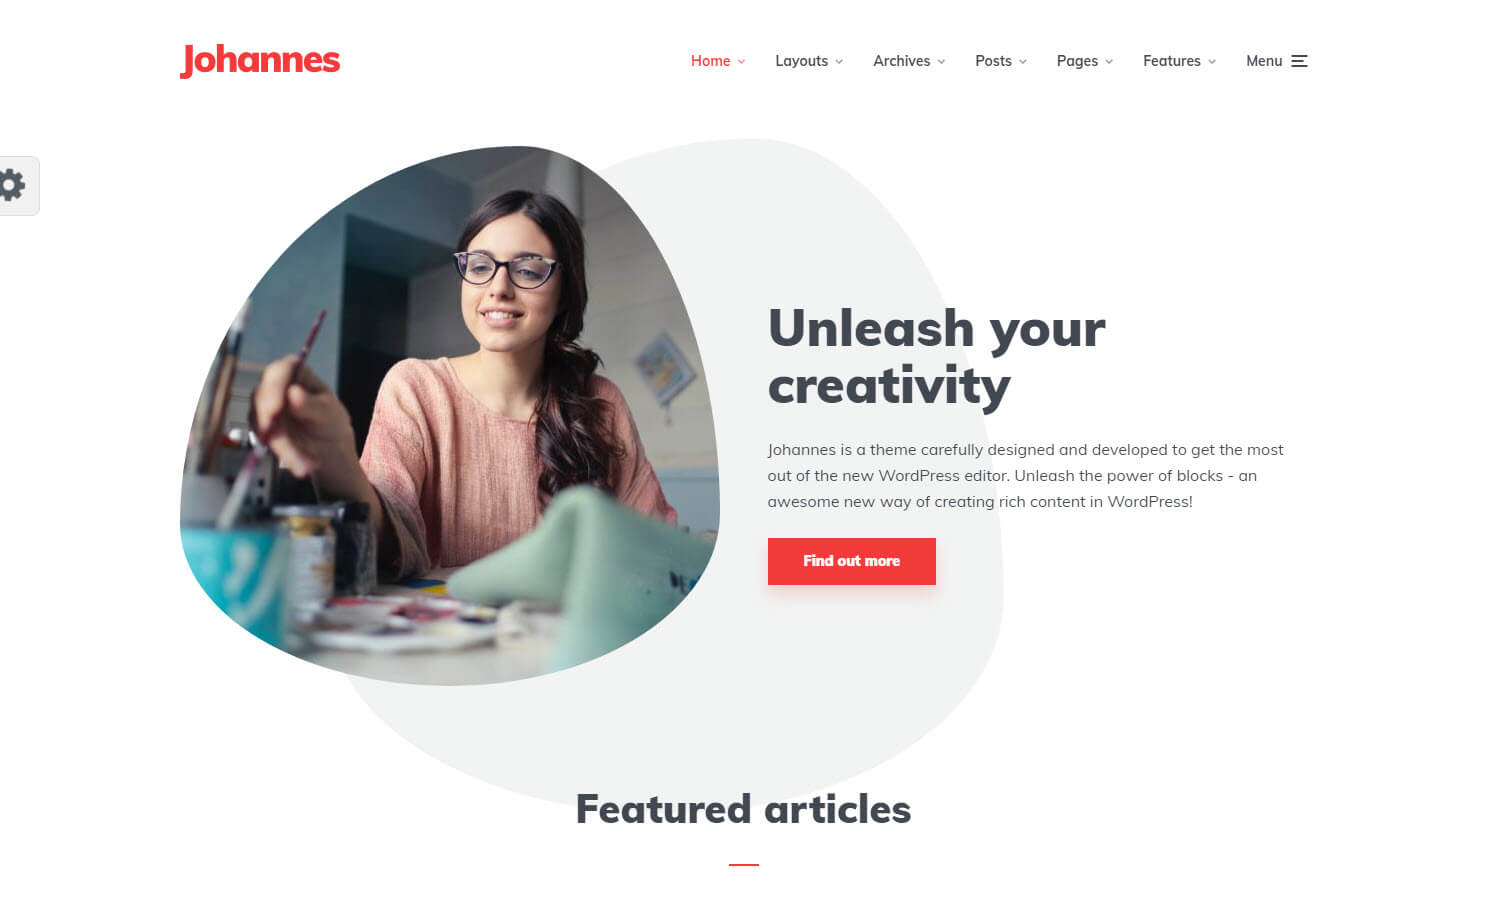 Johannes screenshot